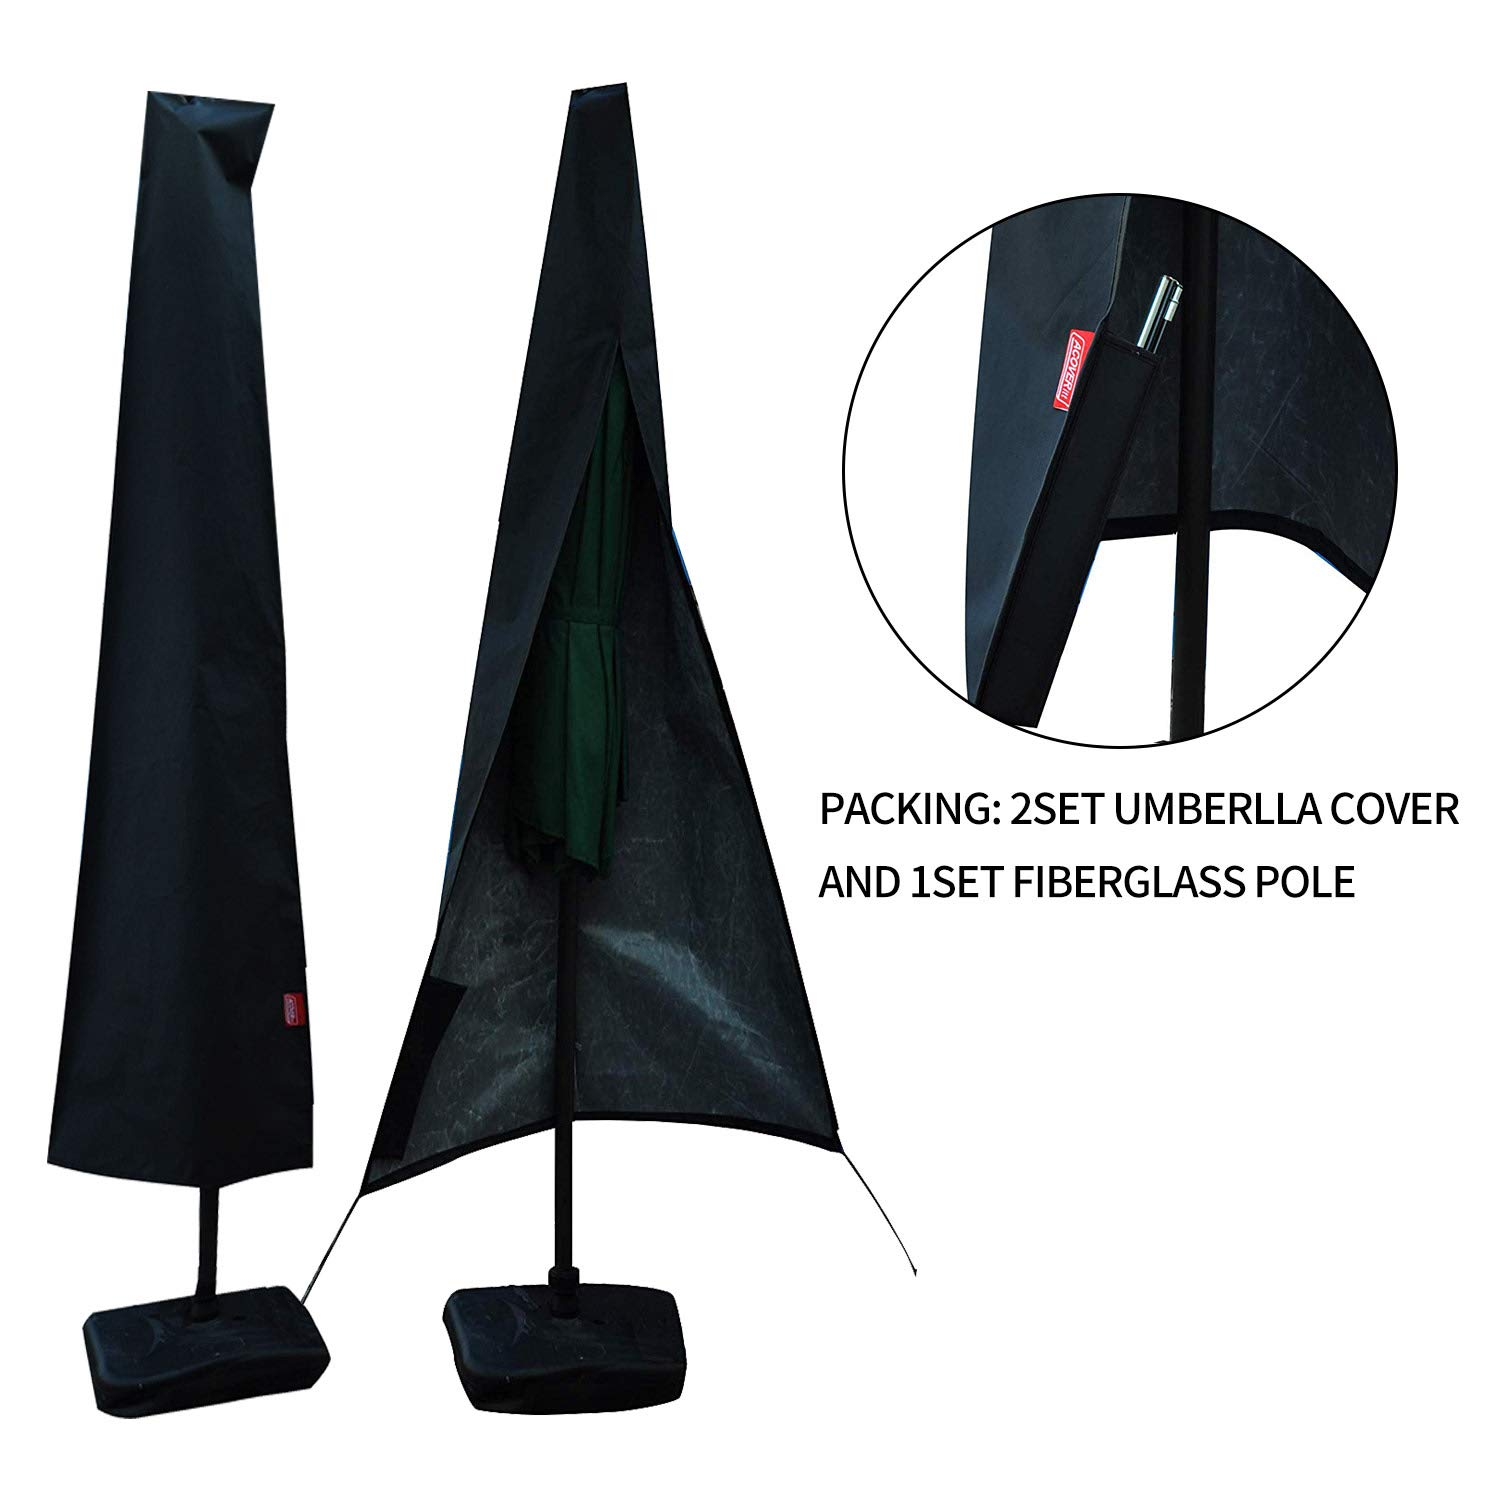 2set Umbrella Covers,Patio Waterproof Market Parasol Covers with Zipper for 8ft to 10ft Outdoor Umbrellas Large Included A Set Fiberglass Pole by acoveritt